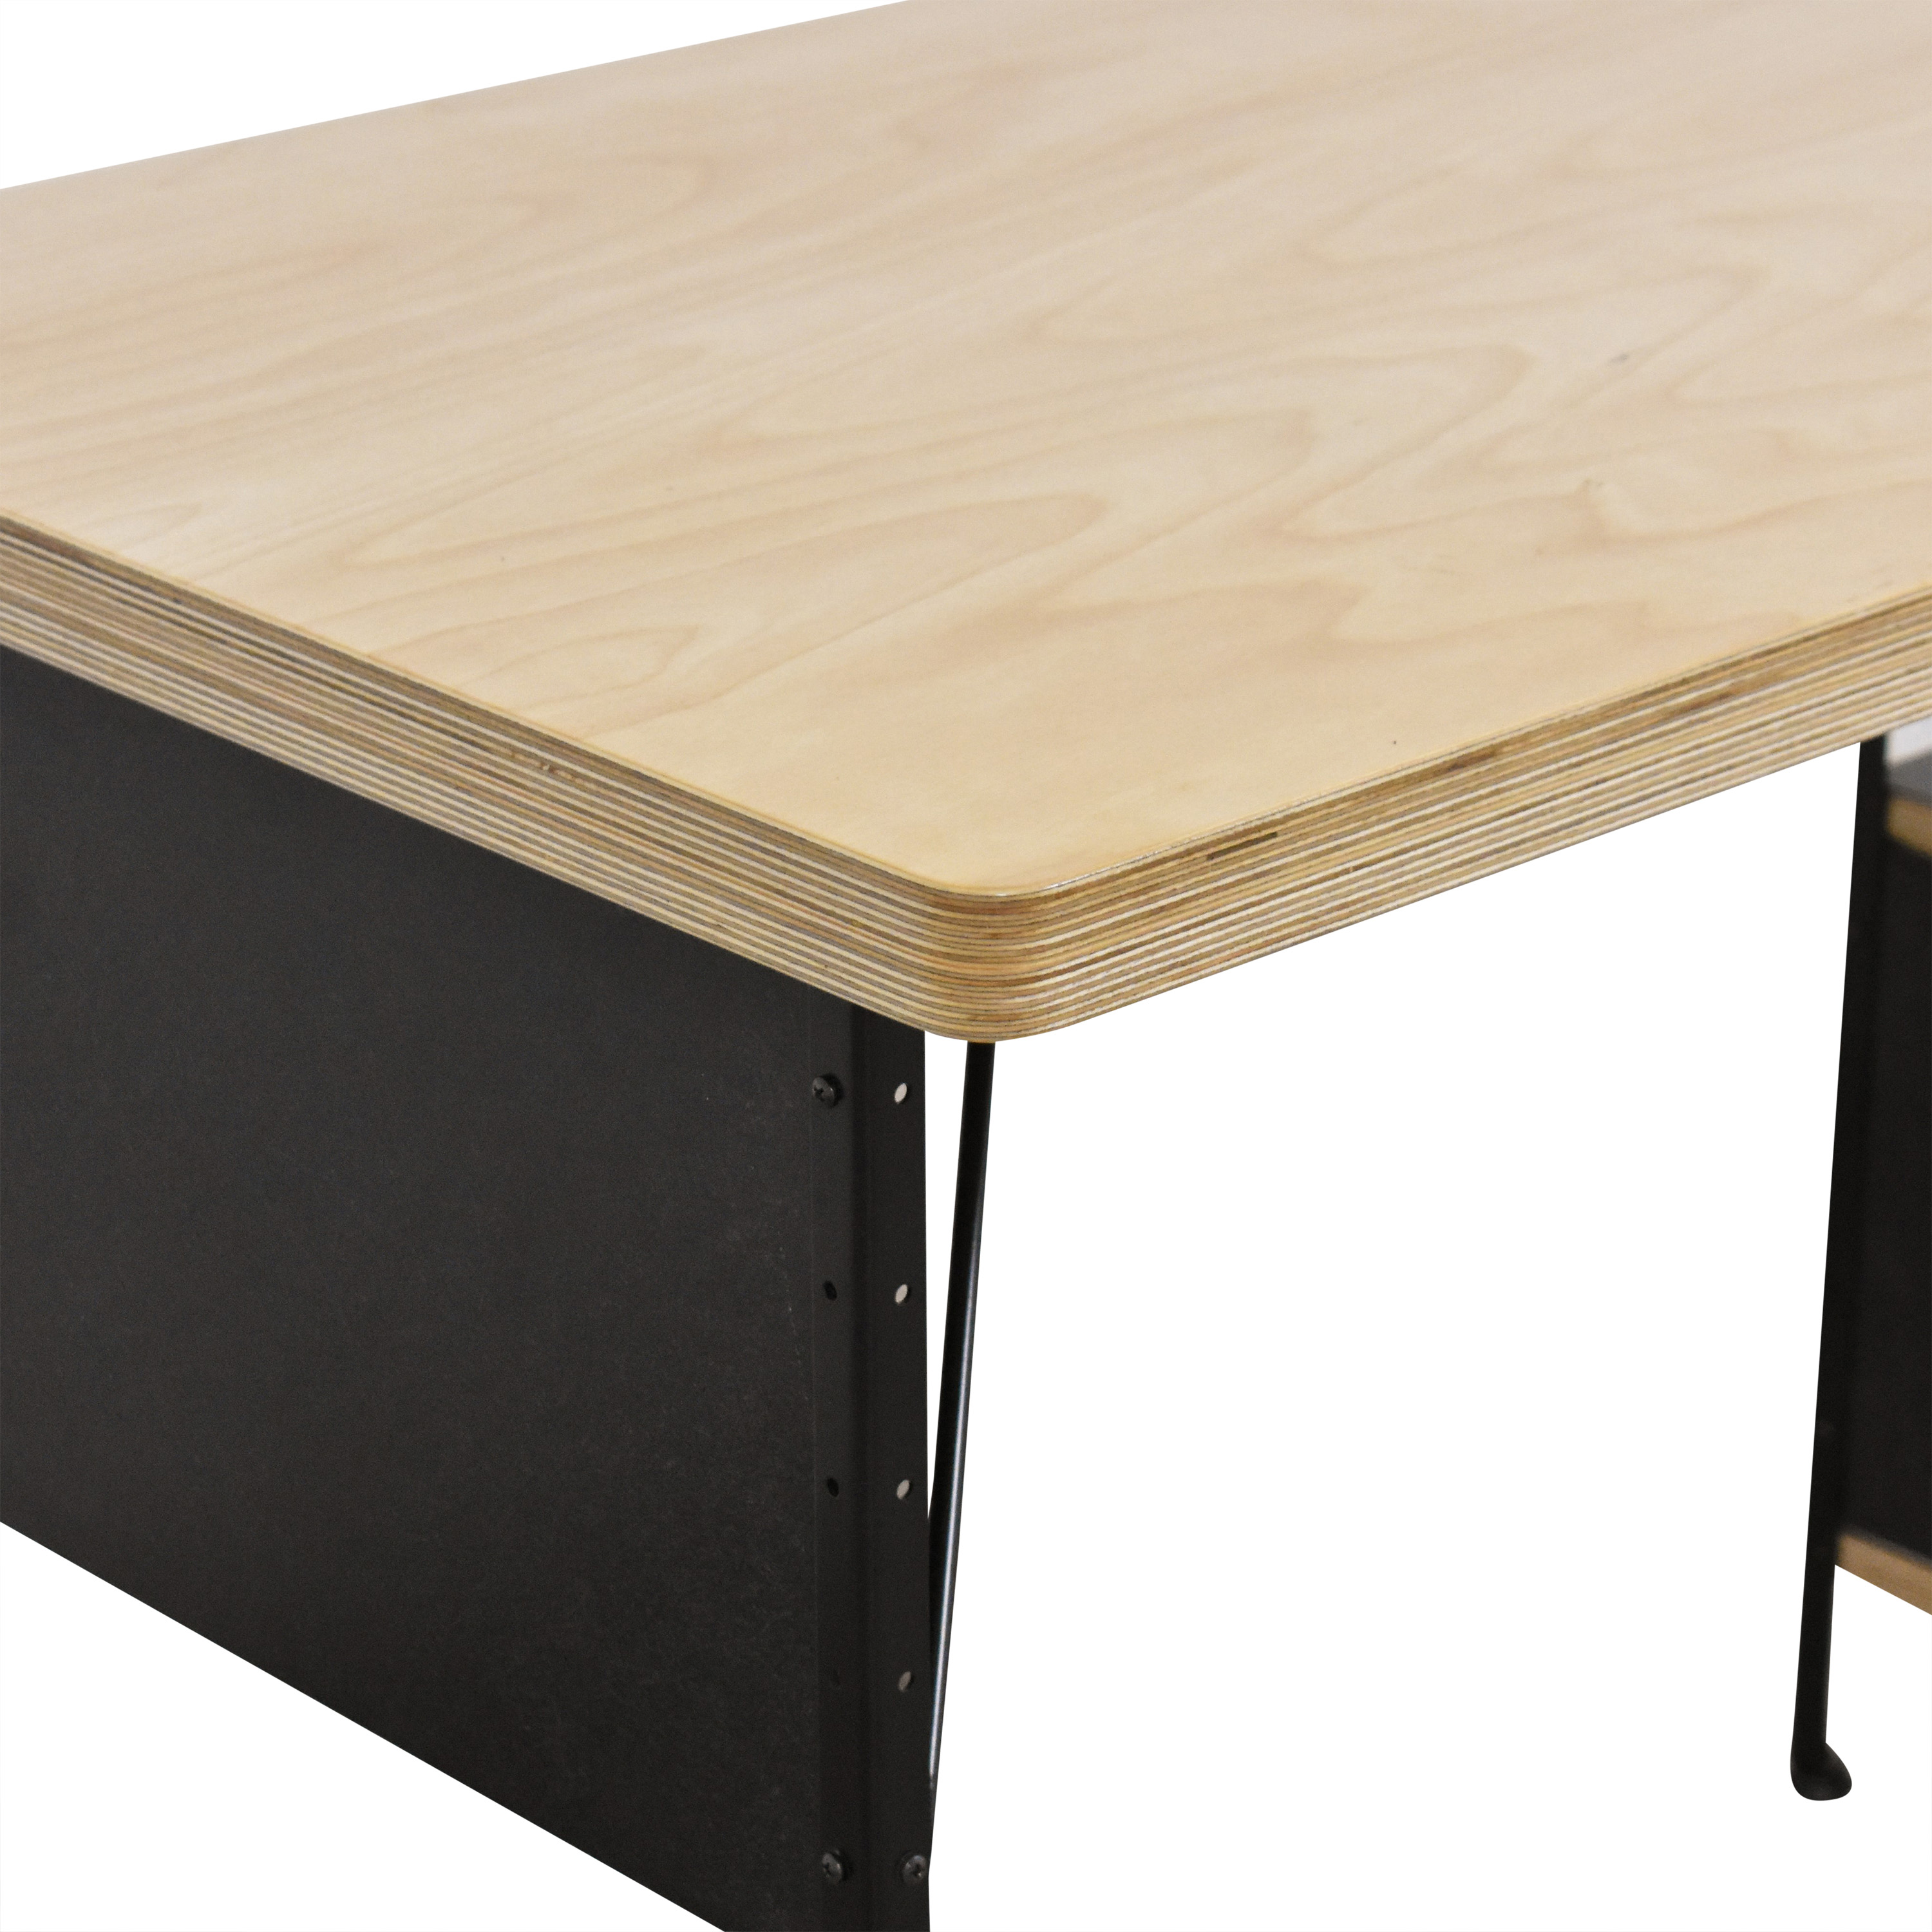 Modernica Modernica Case Study Furniture Desk with 3 Drawers ct